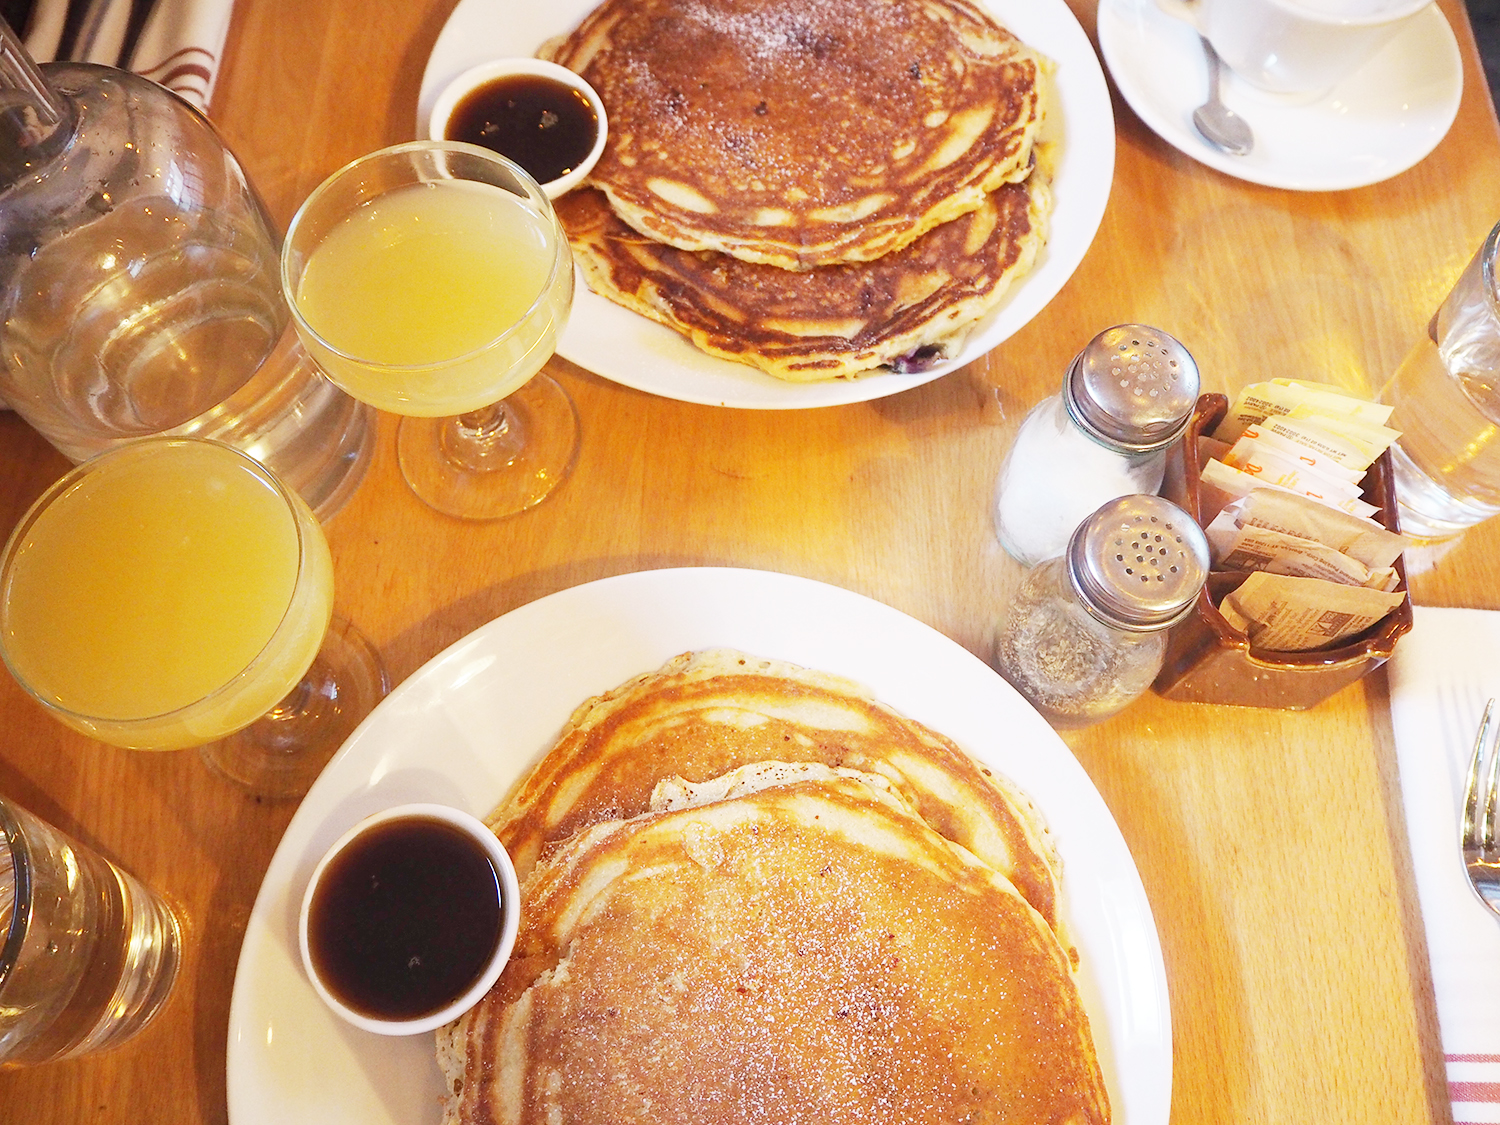 New York pancakes